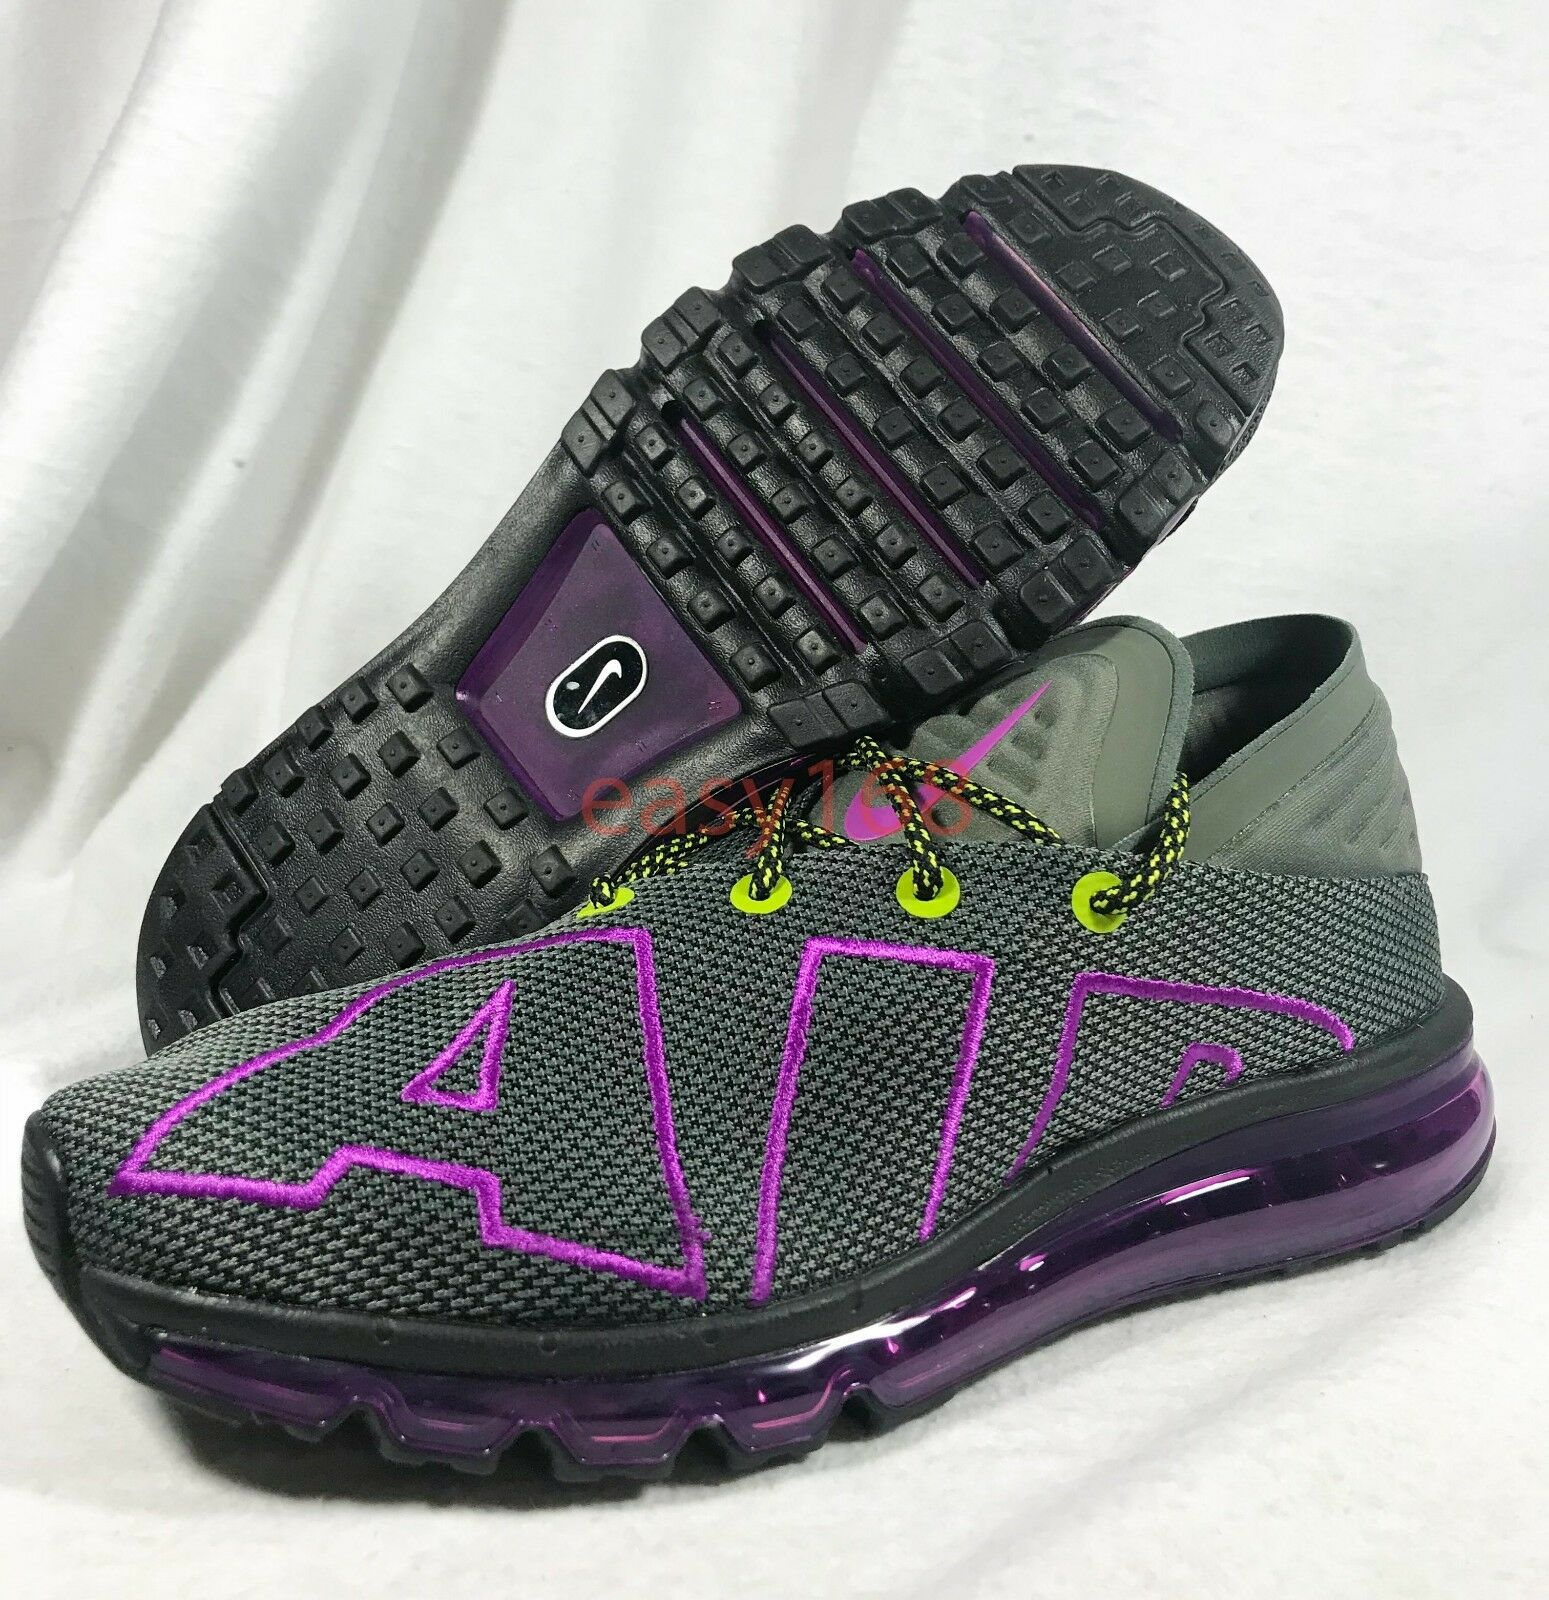 f2a871e371cbe NEW NEW NEW Air Max Flair Sz 8.5 Men s 42 Purple AH9711 Vapormax 360  Running Sportswear